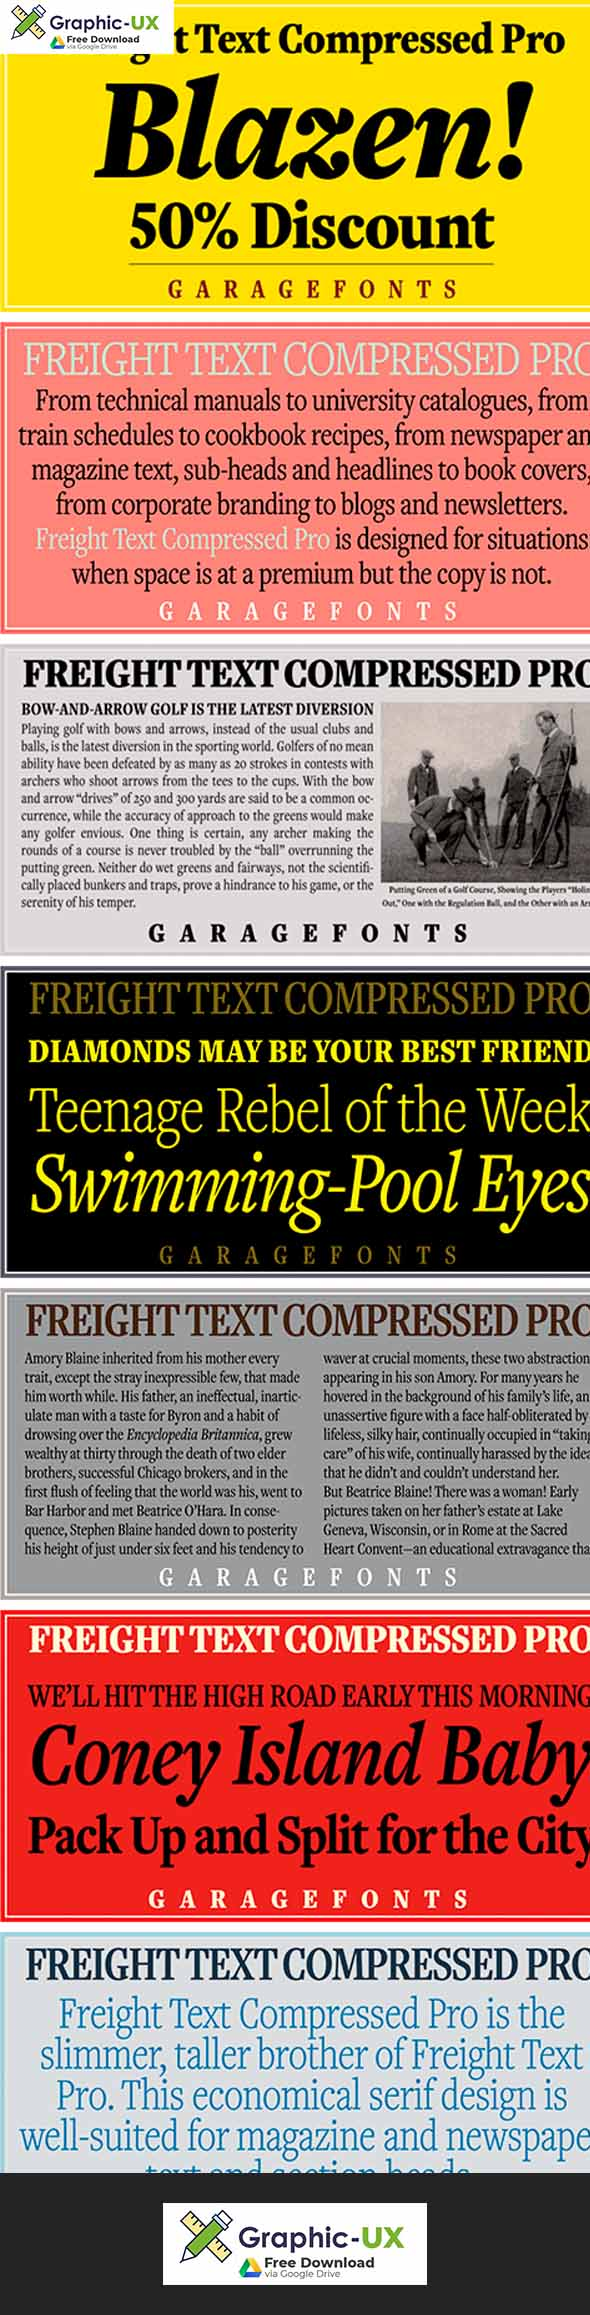 Freight Text Cmp Pro Font Family